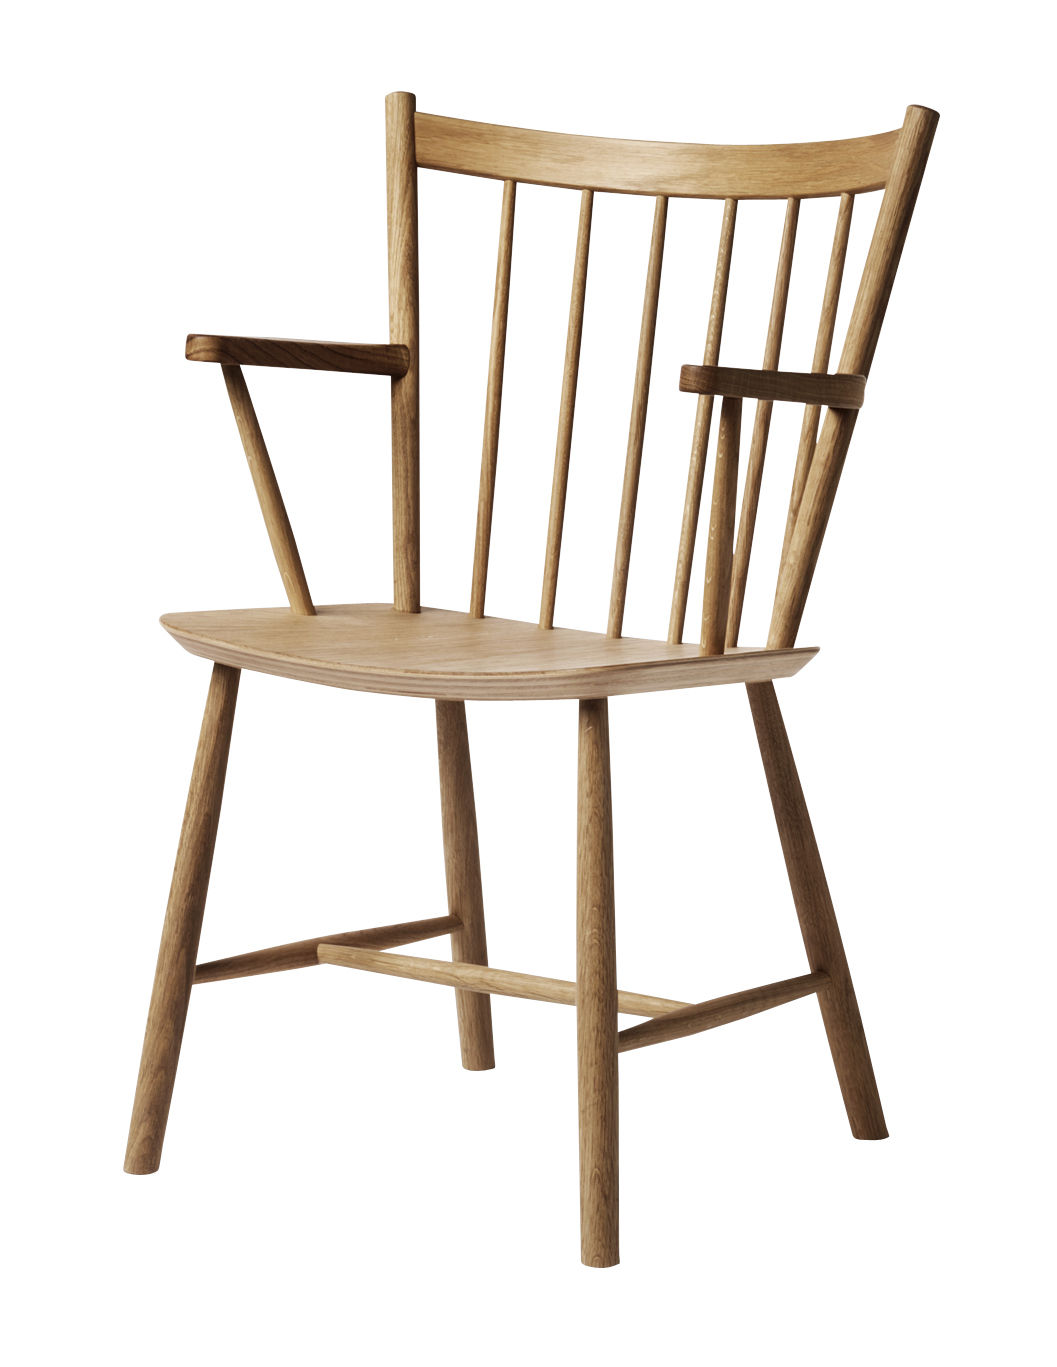 Furniture - Chairs - J42 Armchair - / Wood by Hay - Oiled oak - Oiled oak